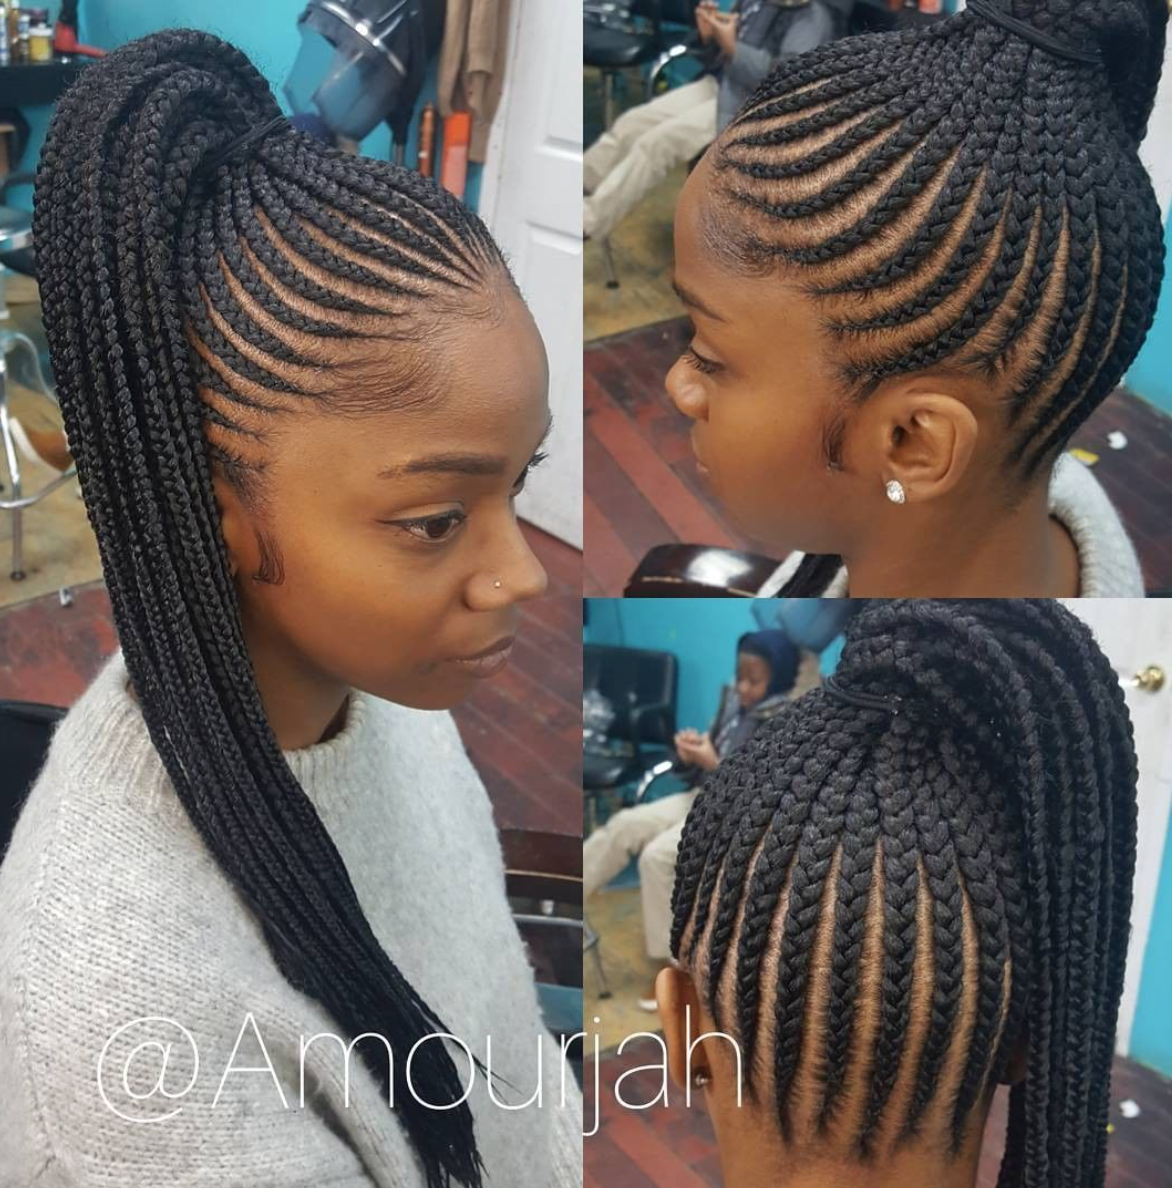 Braid Hairstyles: Flawless Braided Pony Via @amourjah